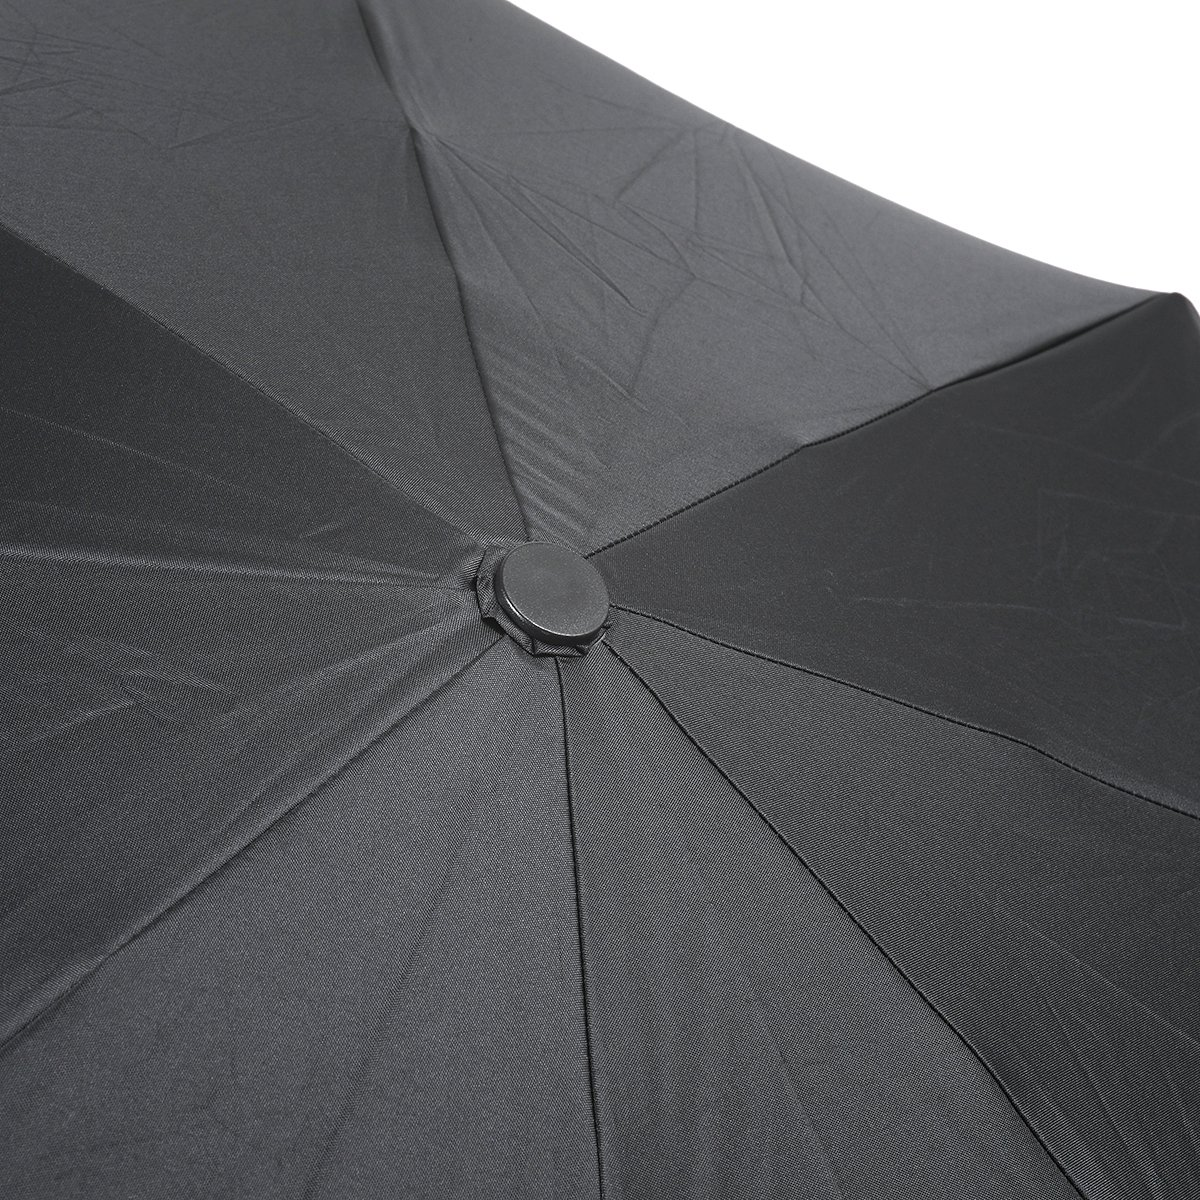 608K UV FOLDING UMBRELLA 詳細画像6